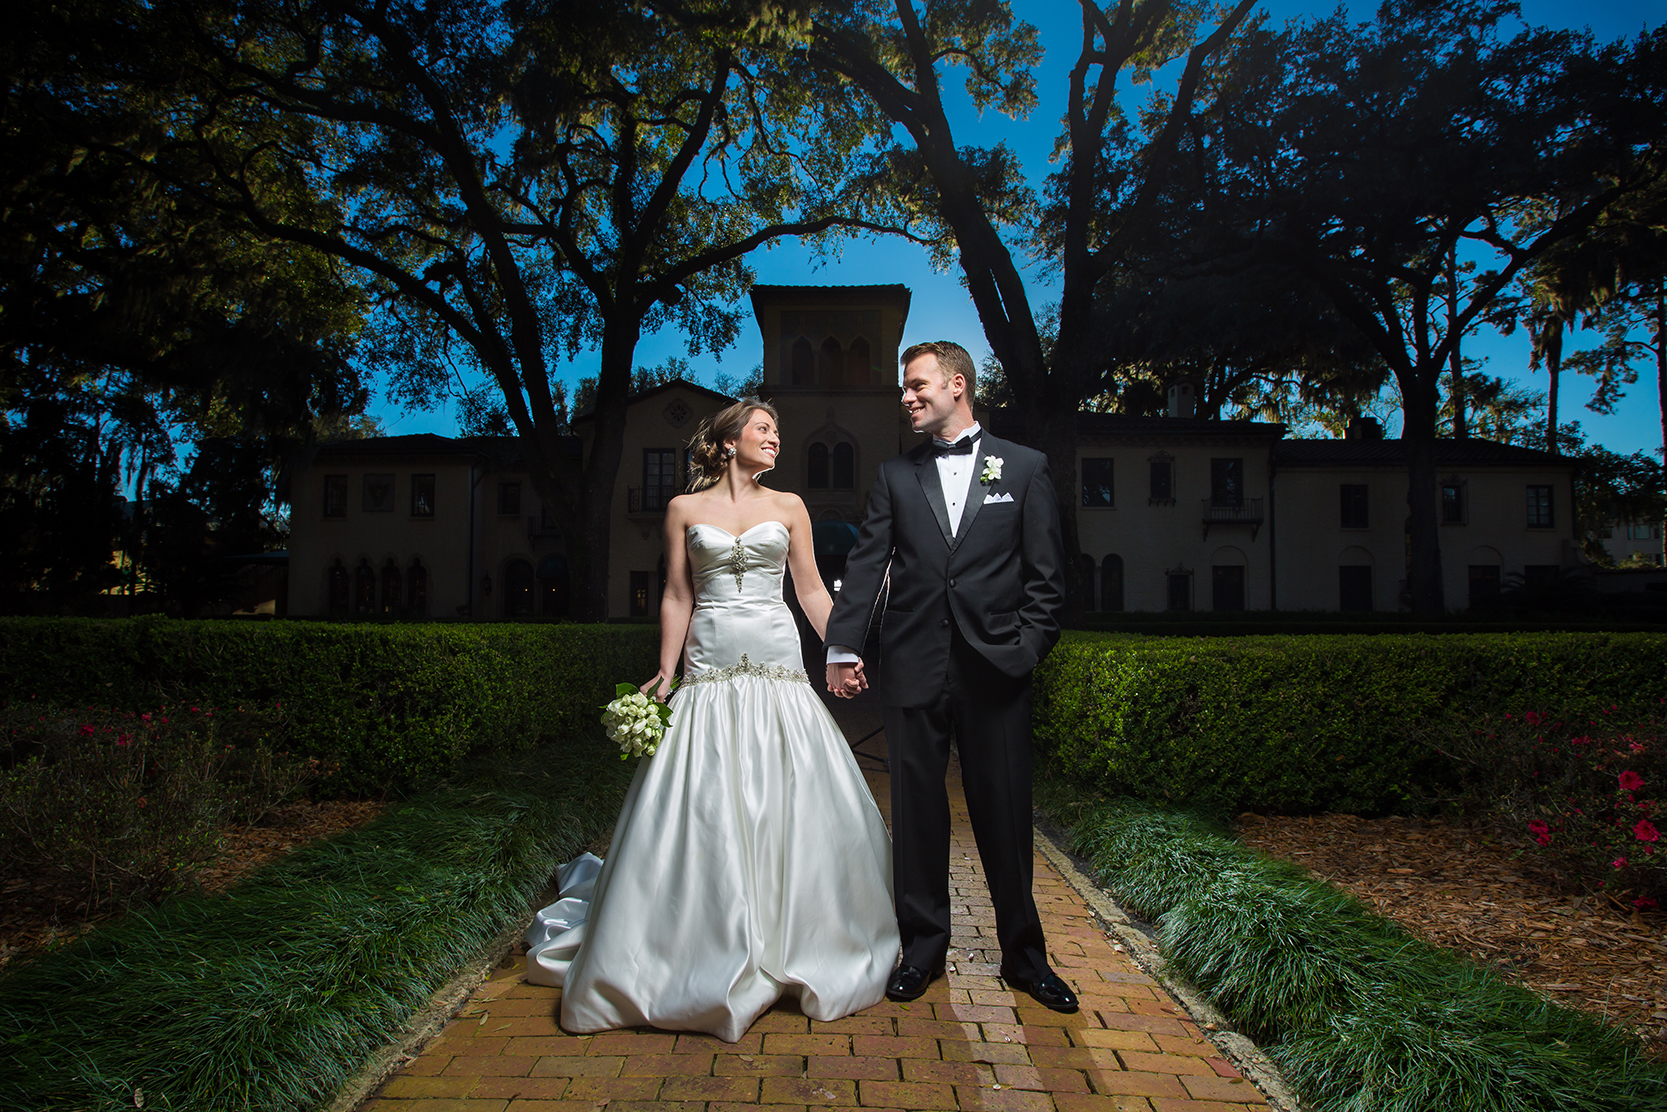 adam-szarmack-epping-forest-yacht-club-jacksonville-wedding-photographer-IMG_9204.jpg